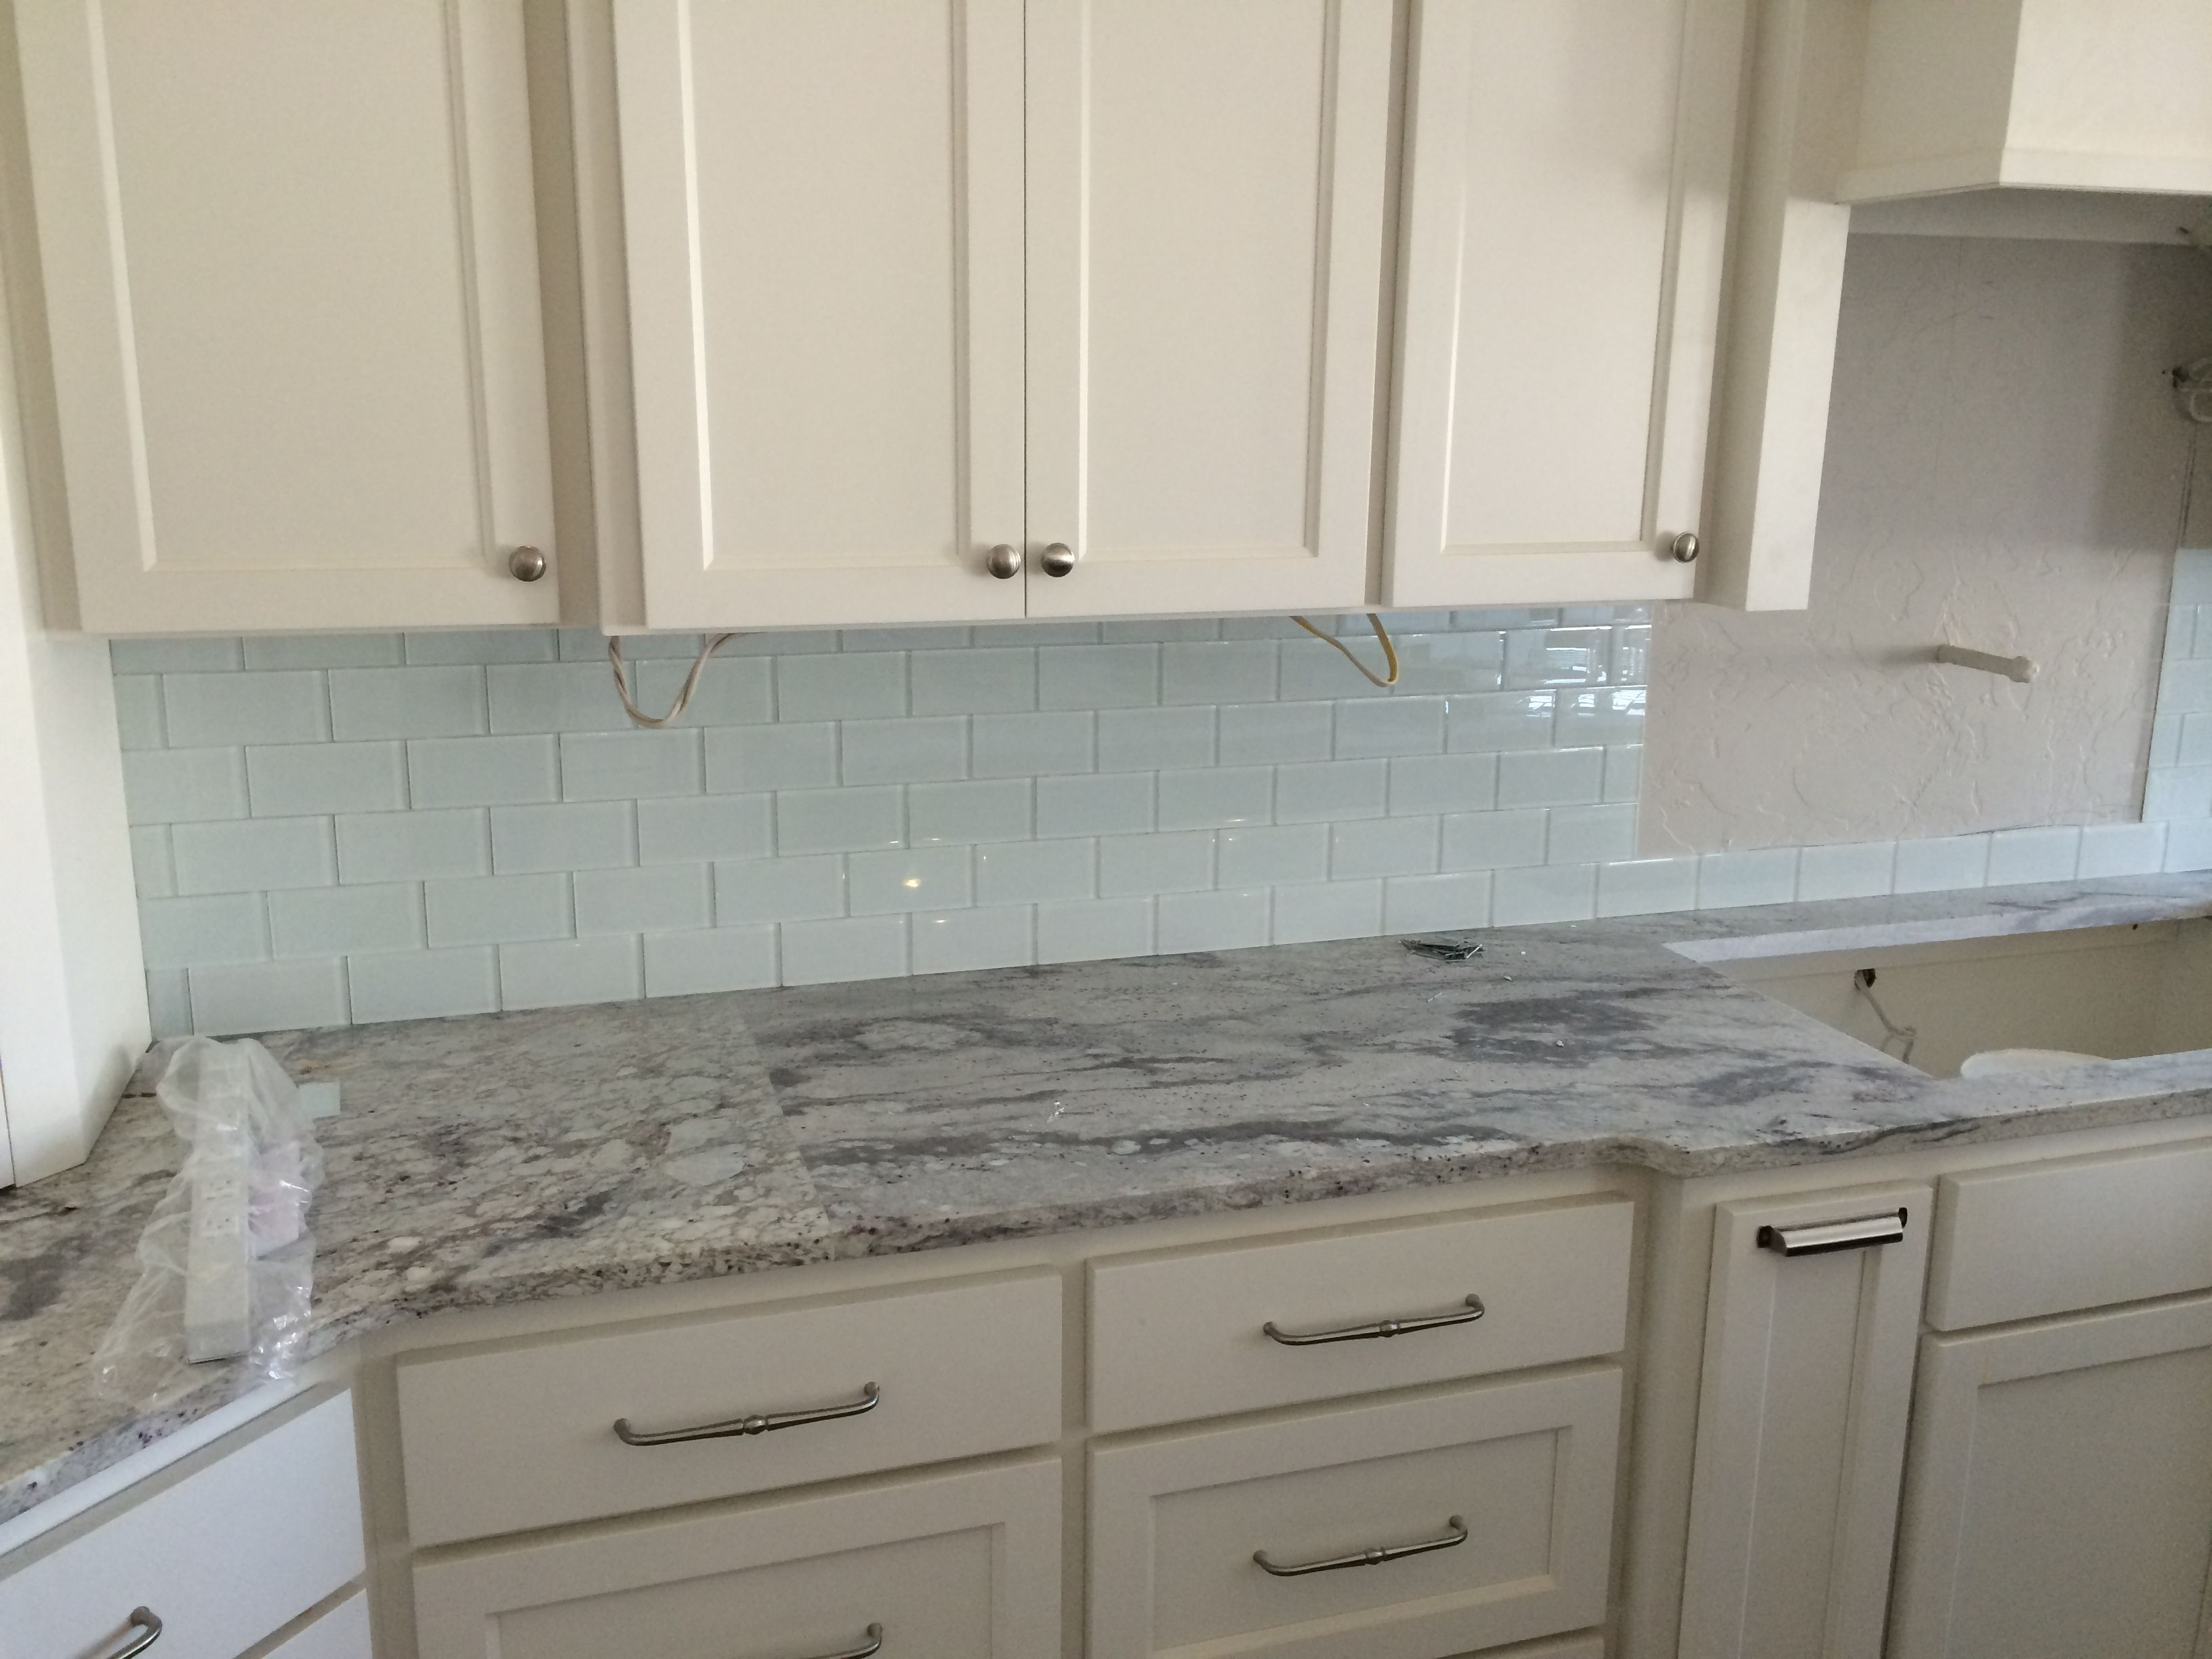 Kitchen Backsplash Ideas White Cabinets Bakers Racks Baking Pastry